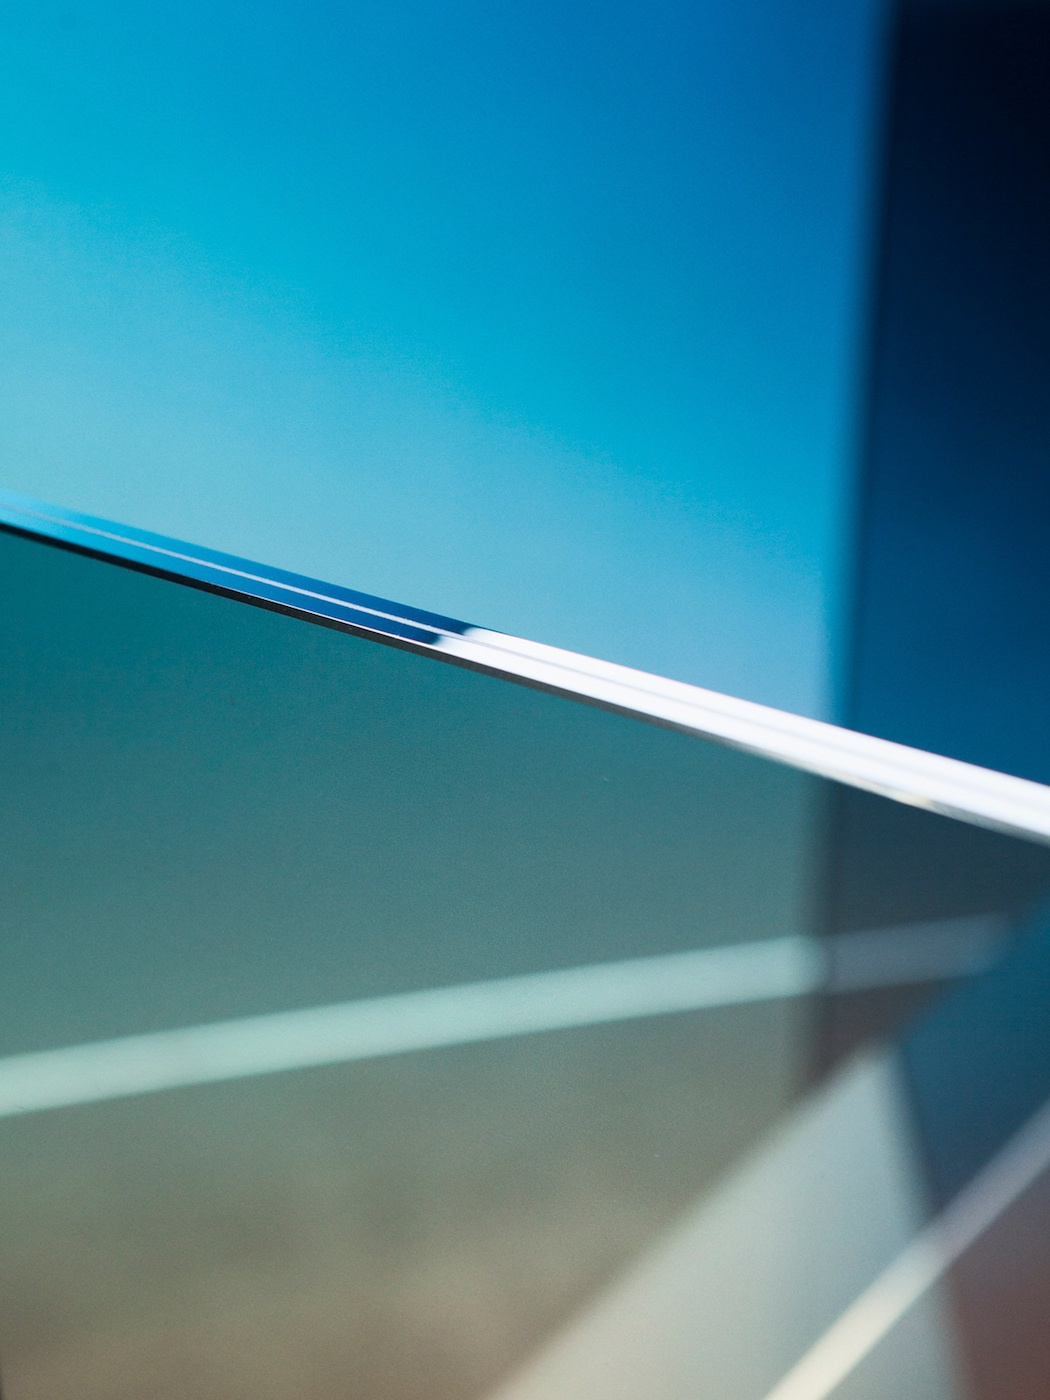 ombr-glass-chair-detail-2_1200_01